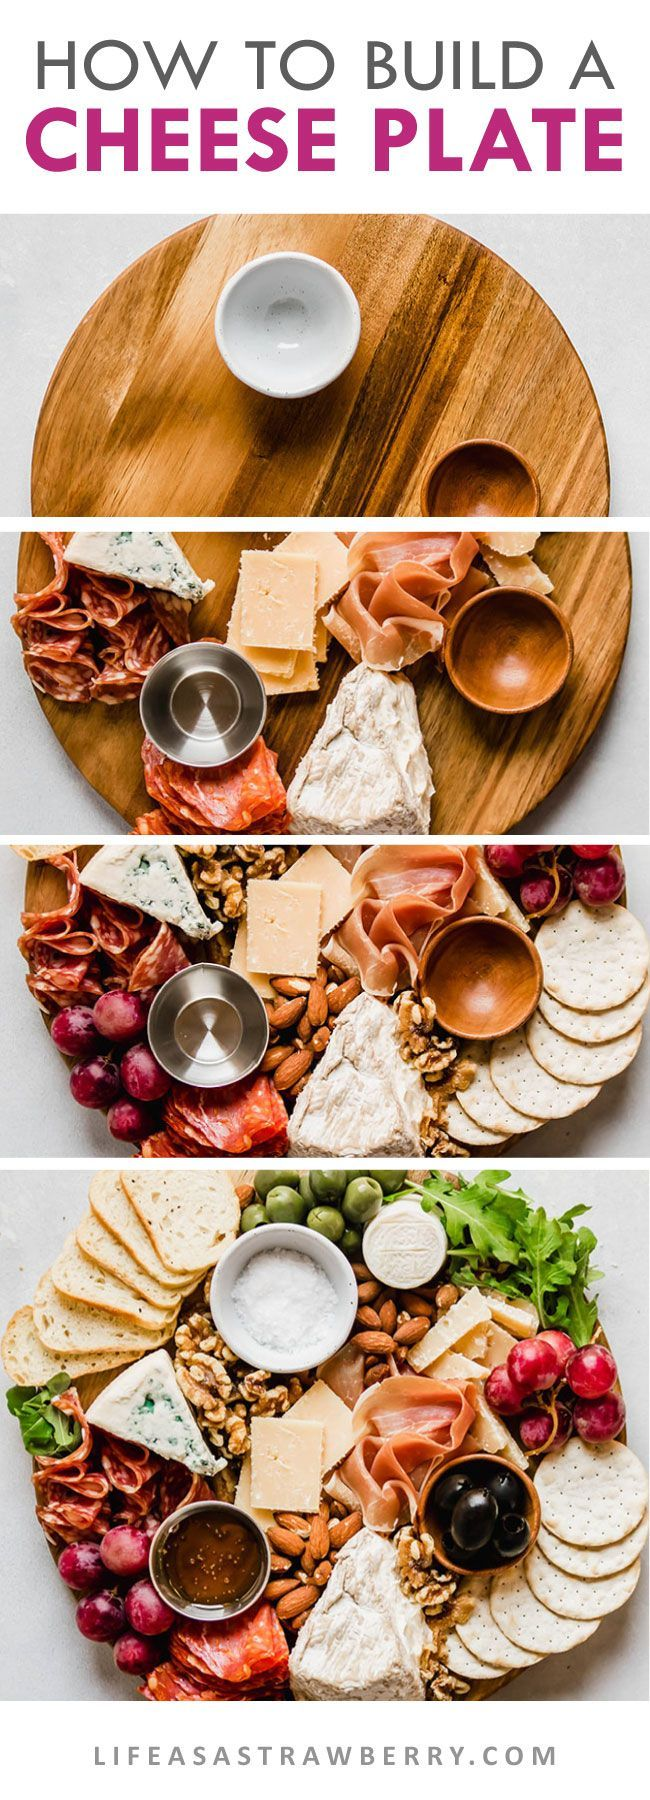 How to Make a Cheese Plate #plateaucharcuterieetfromage